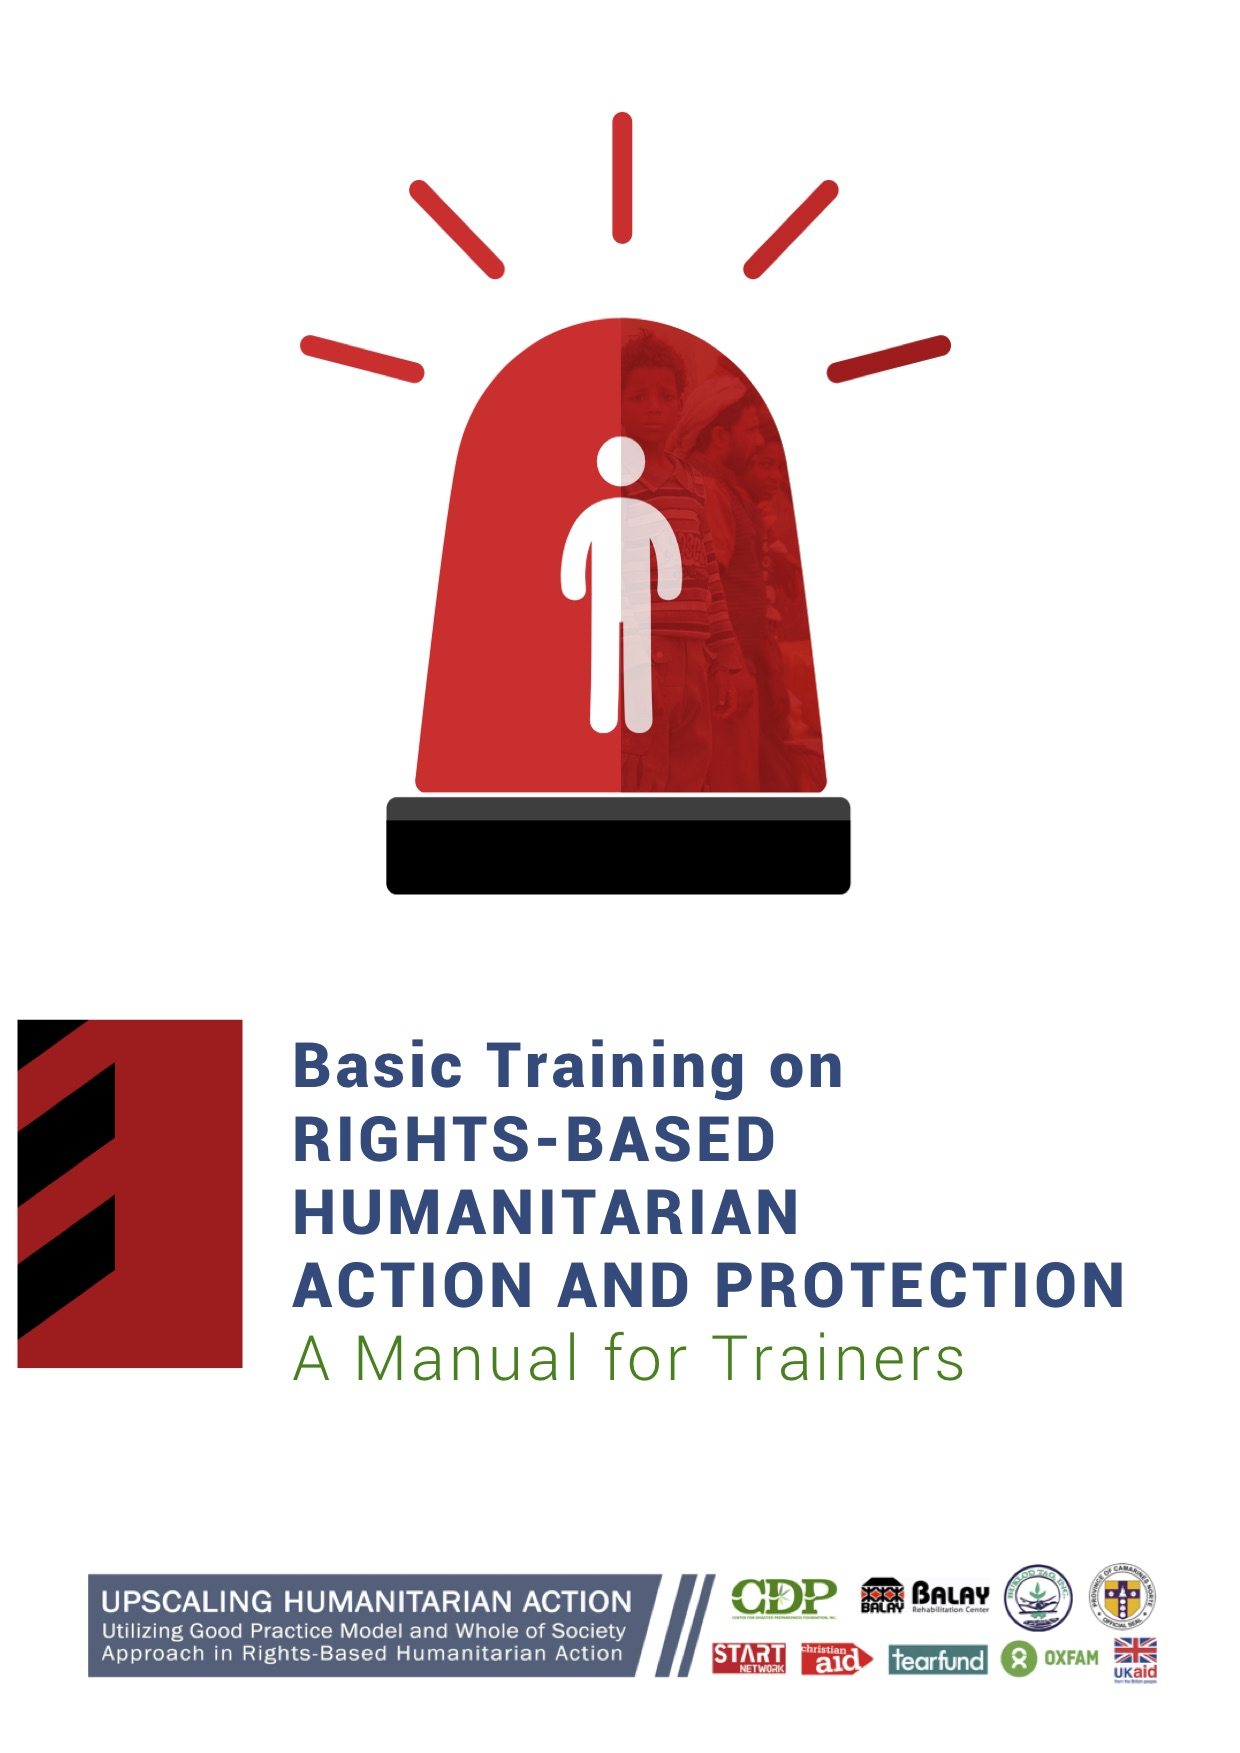 Basic Training on Rights-Based Human